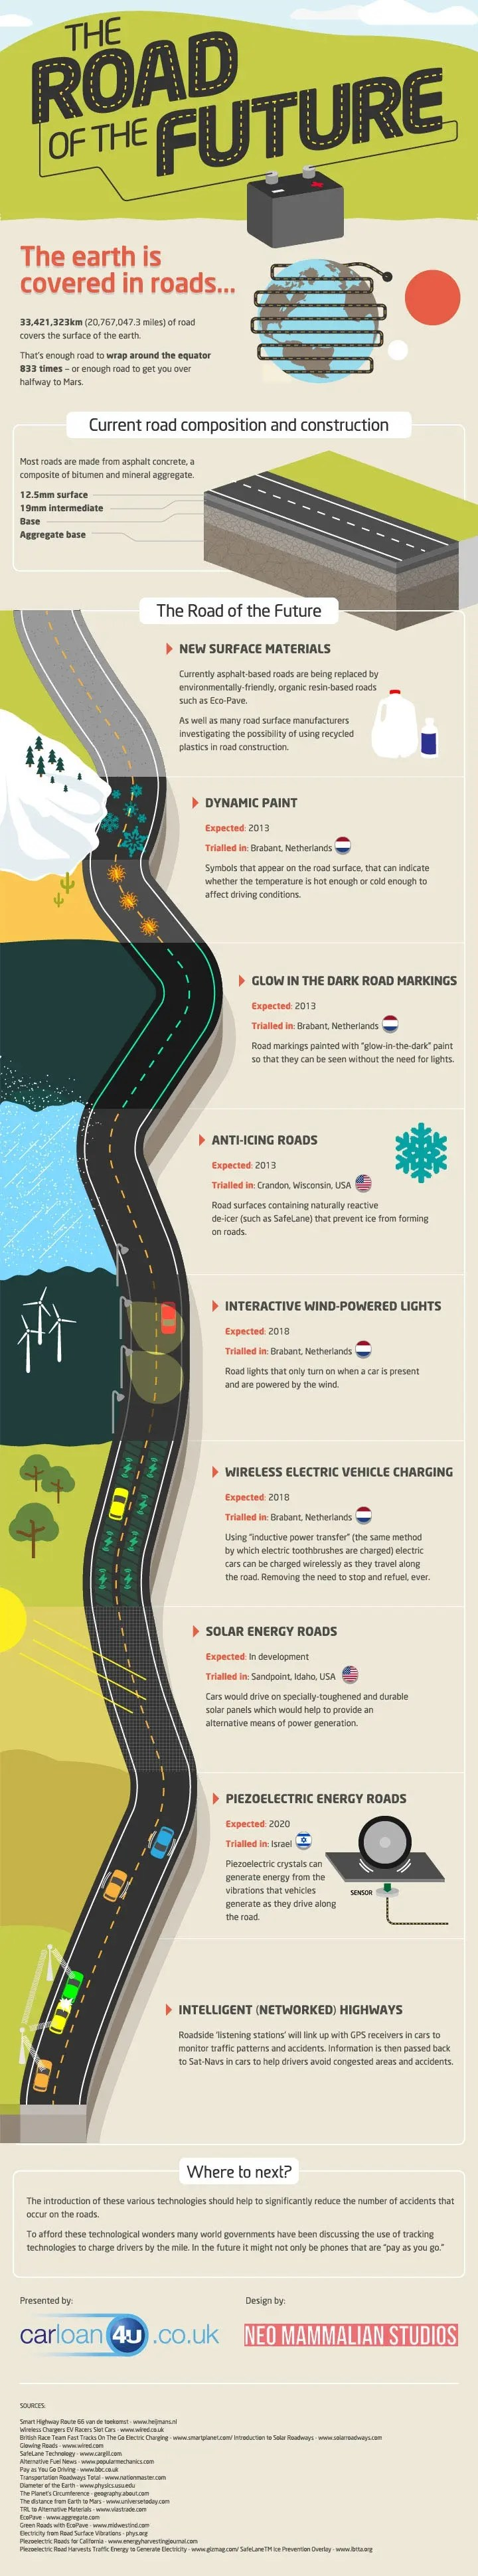 road of future infographic